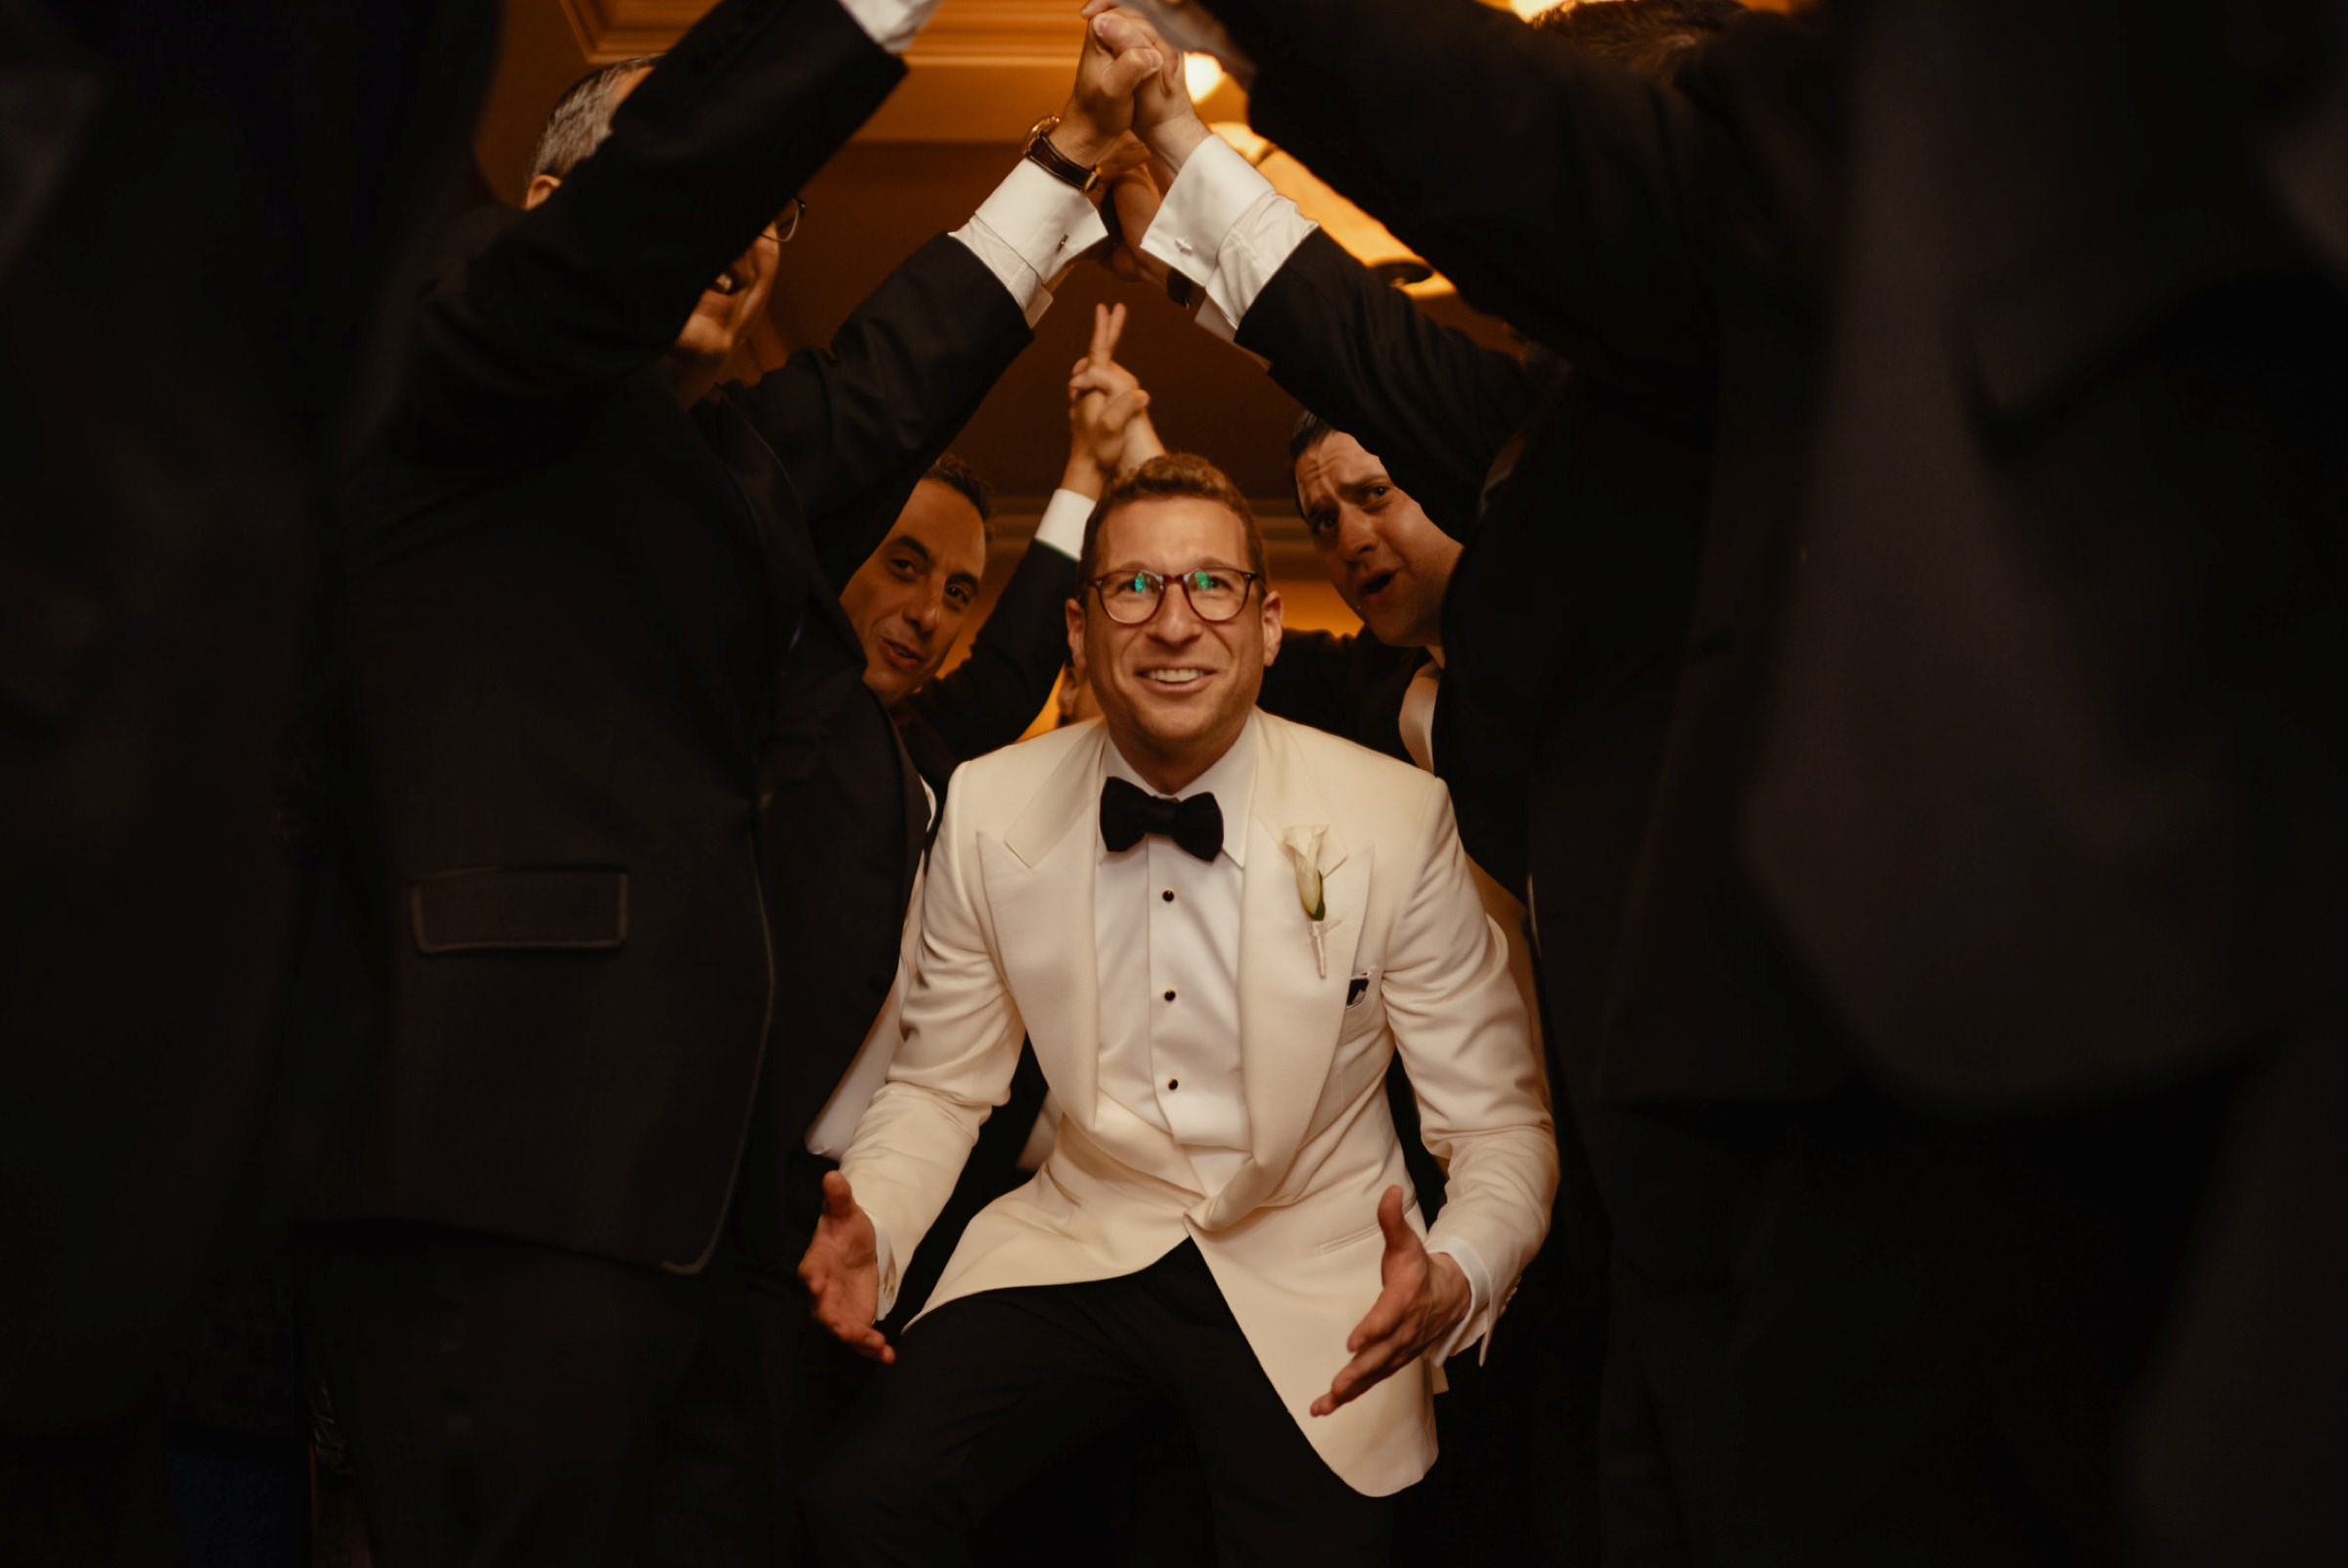 groom in white tuxedo dancing under arms of groomsmen-groom-being-held-up-in-the-air-by-all-the-groomsmen-at- photo by Dark Roux